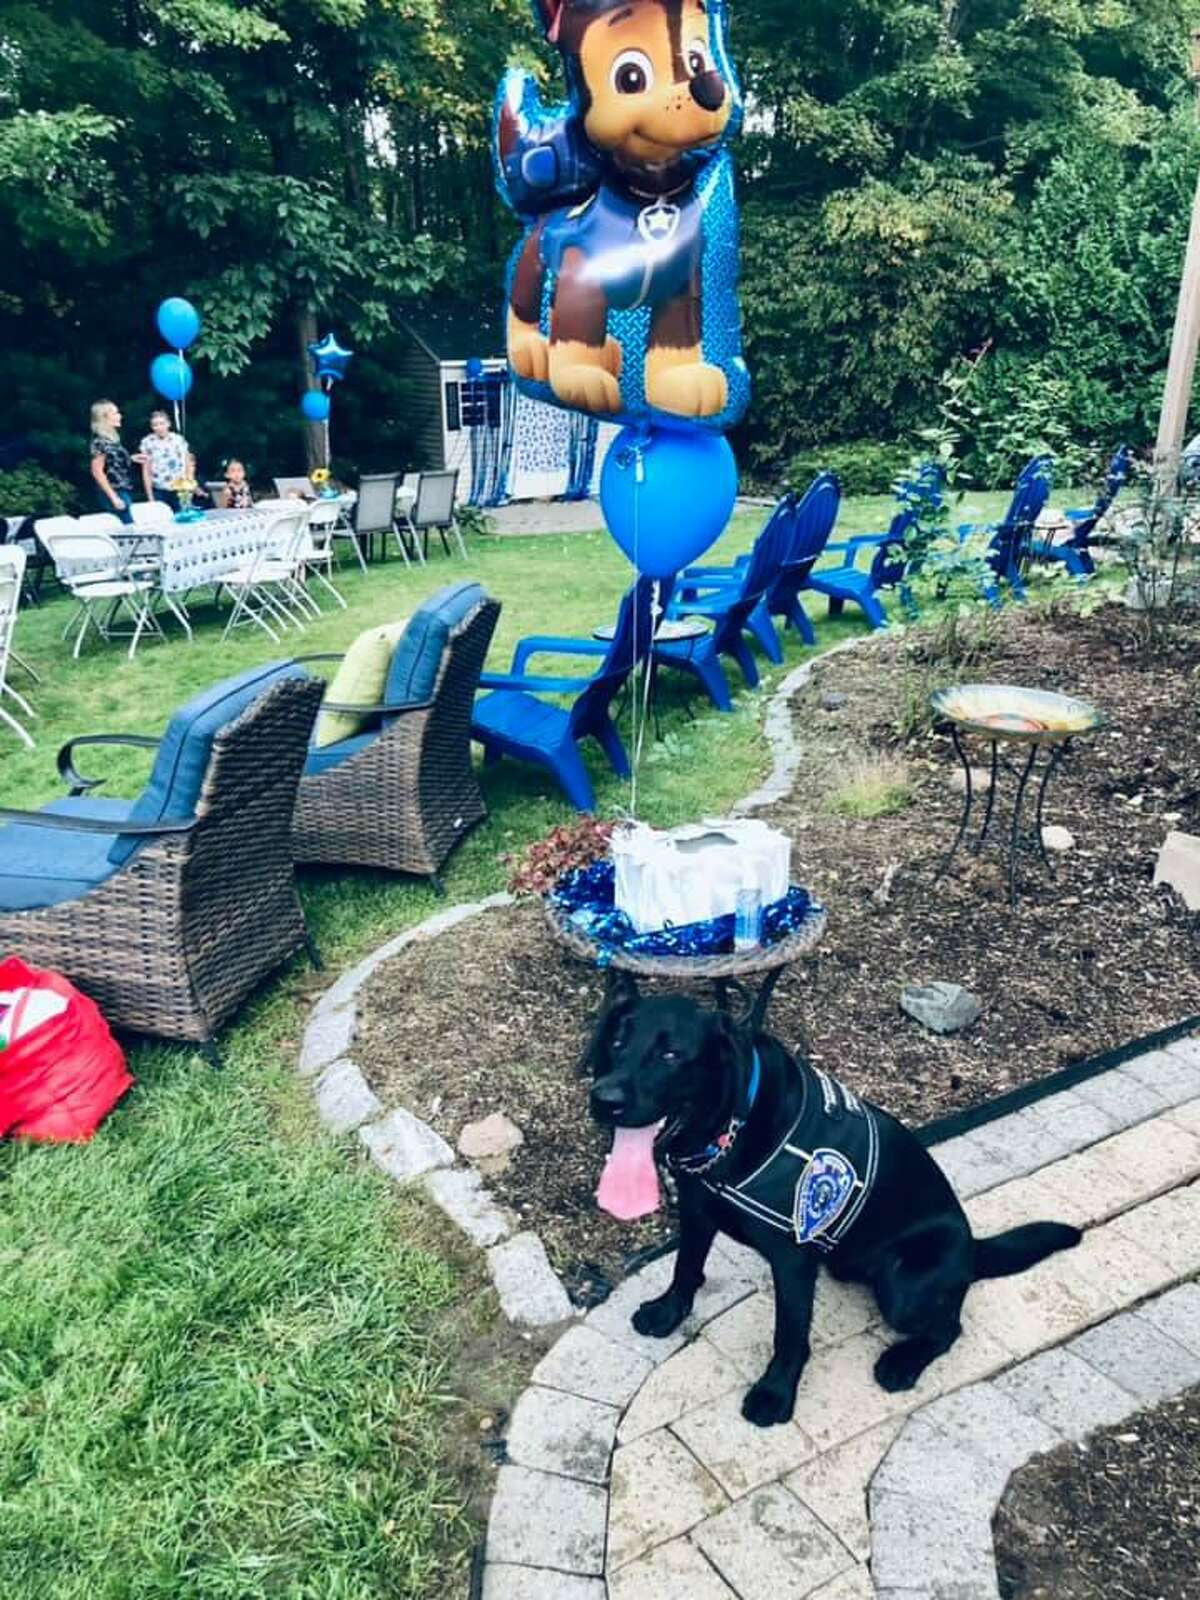 K-9 Bear was the star of the show at a local family's backyard fundraiser Saturday, Sept. 19.